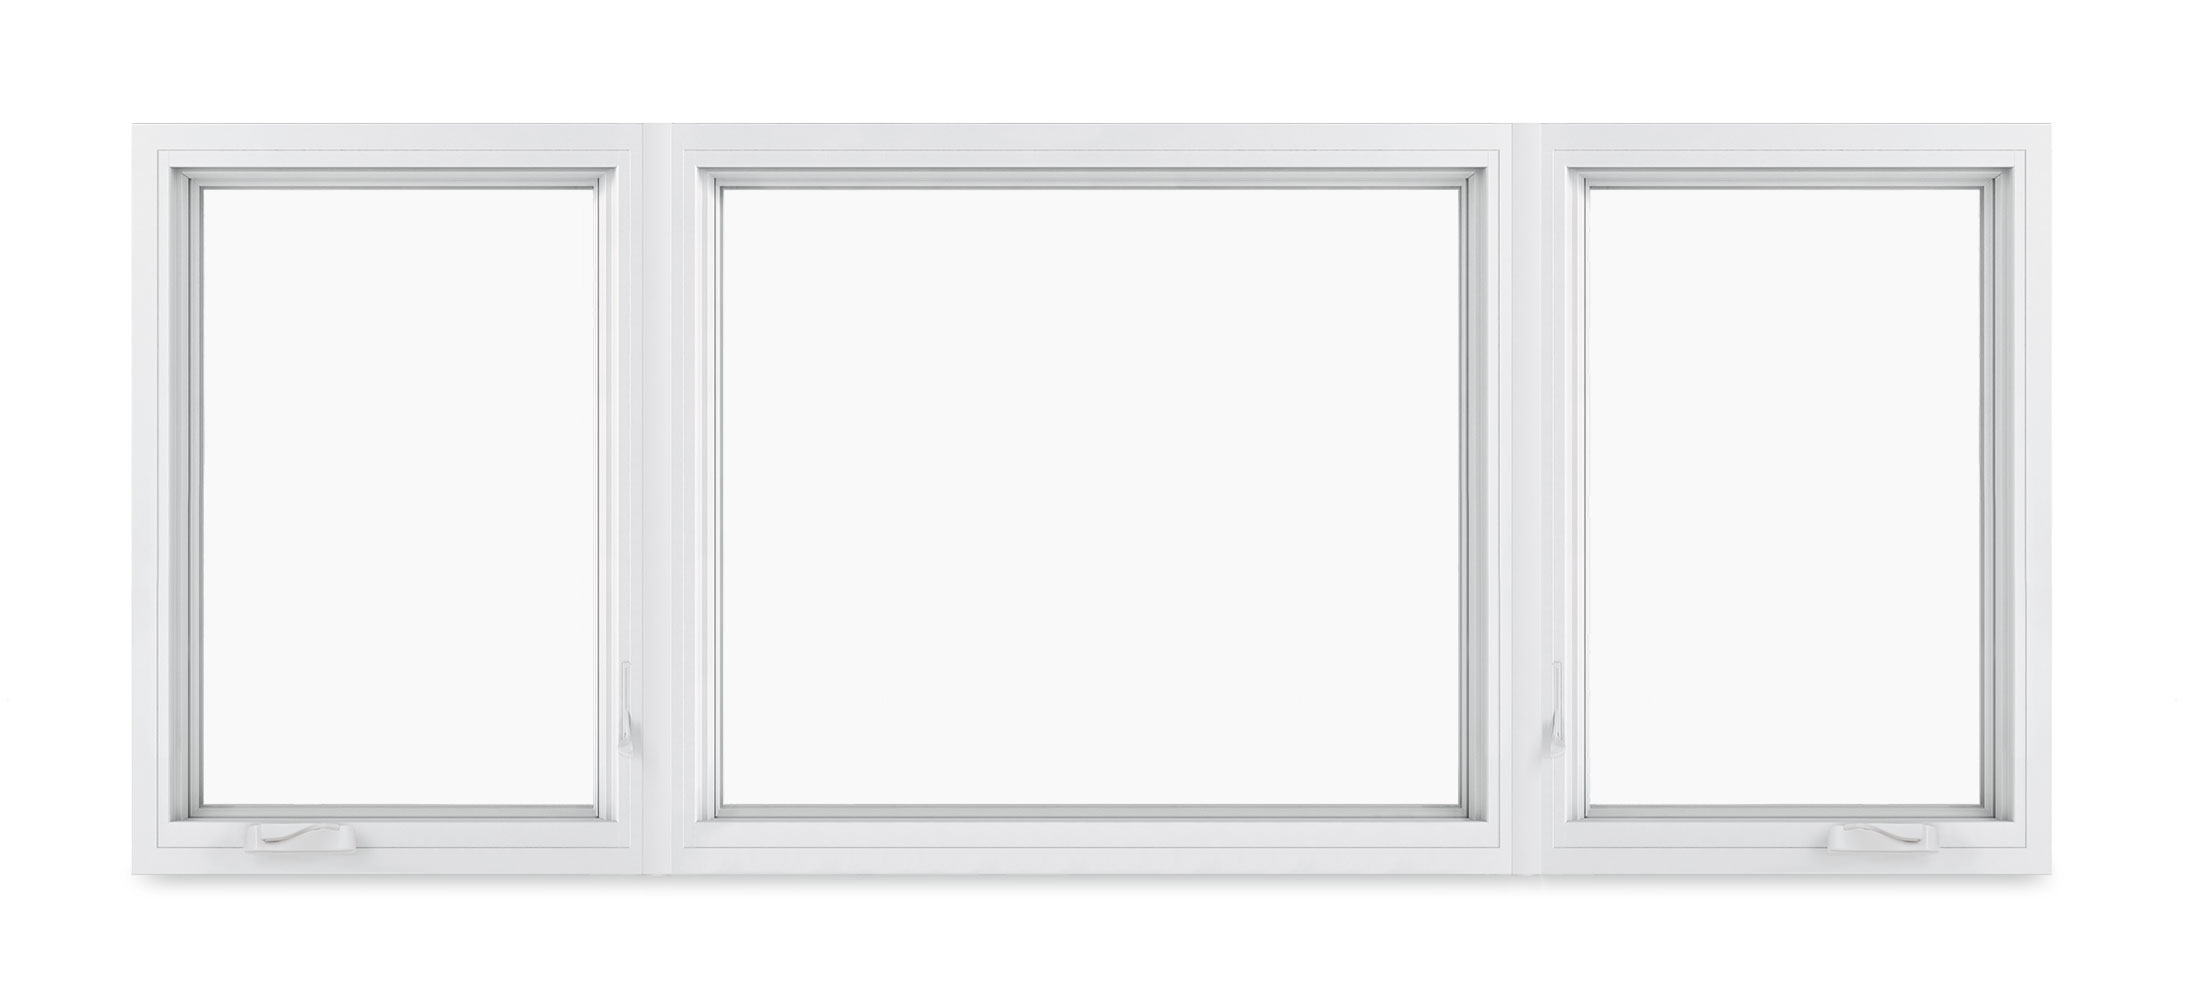 Replacement Casement Windows - Infinity from Marvin